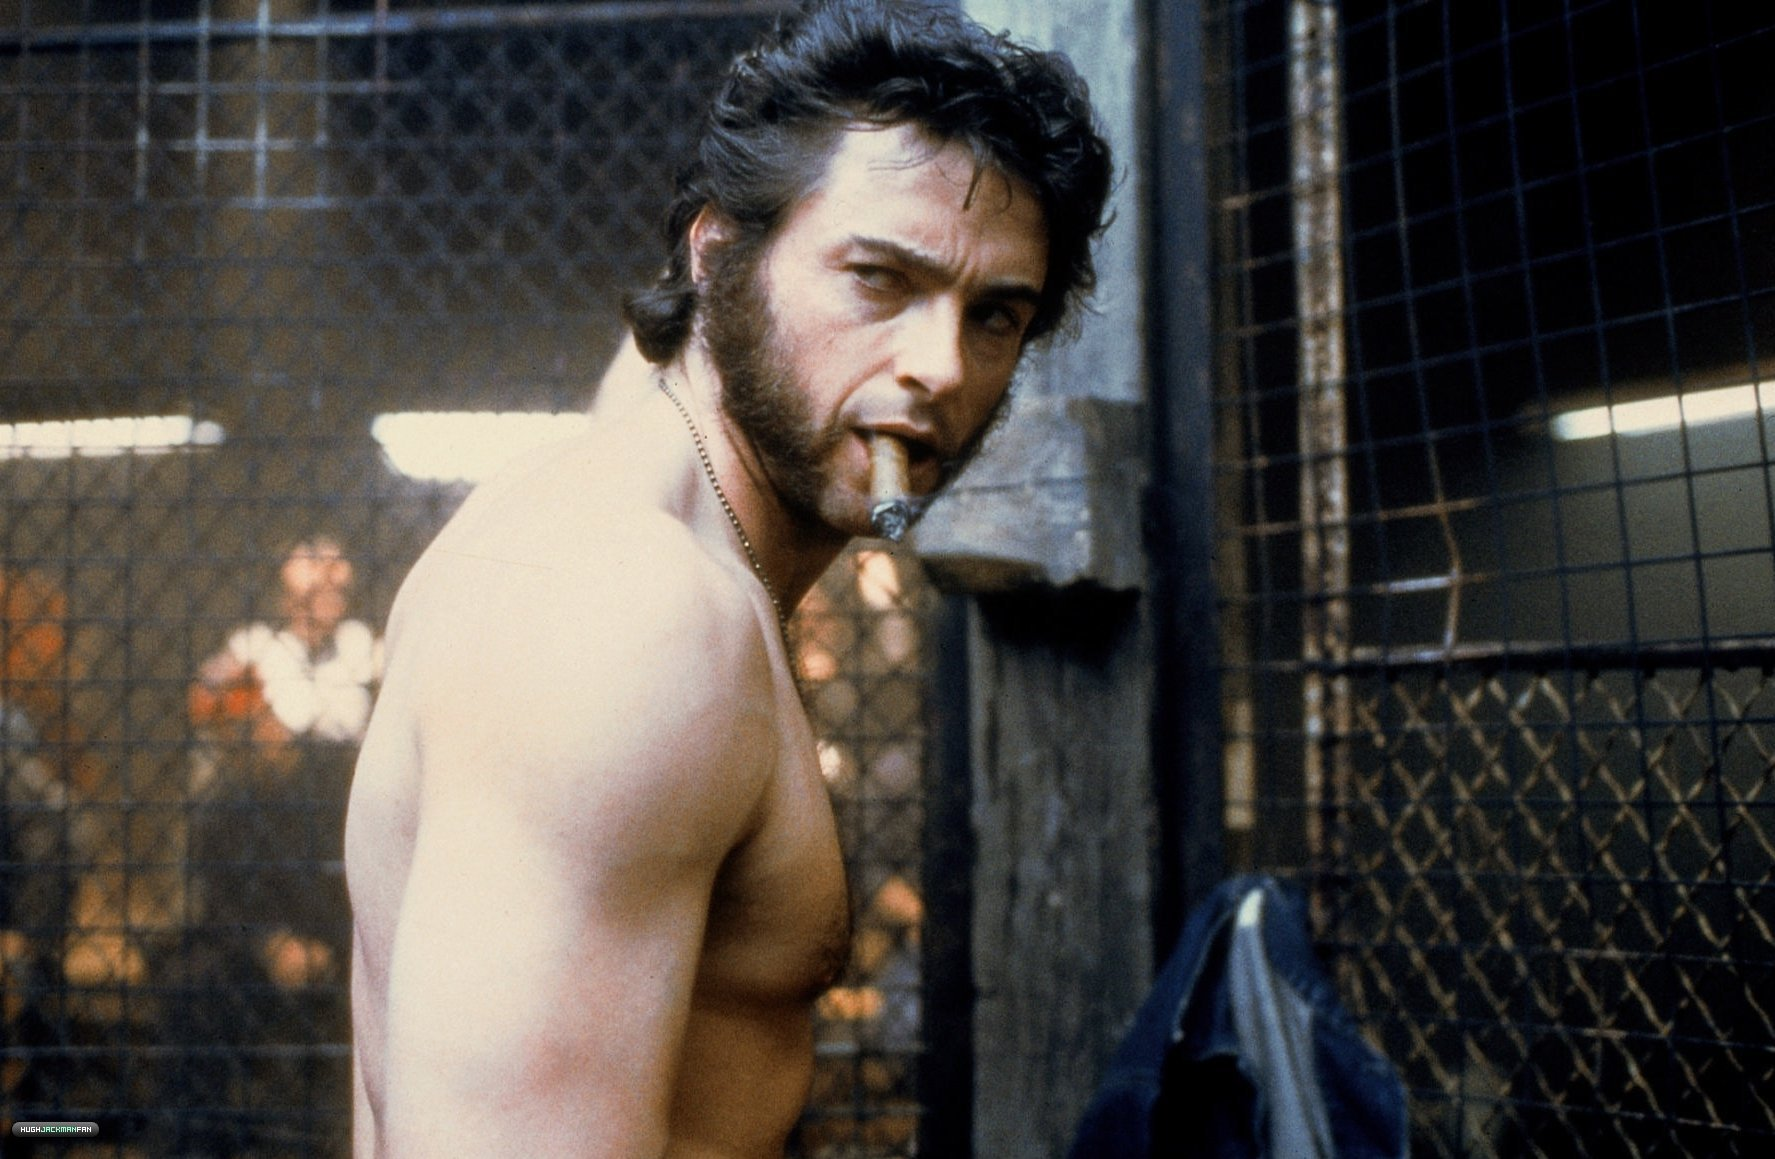 Hugh Jackman As Wolverine Images X Men HD Wallpaper And Background Photos